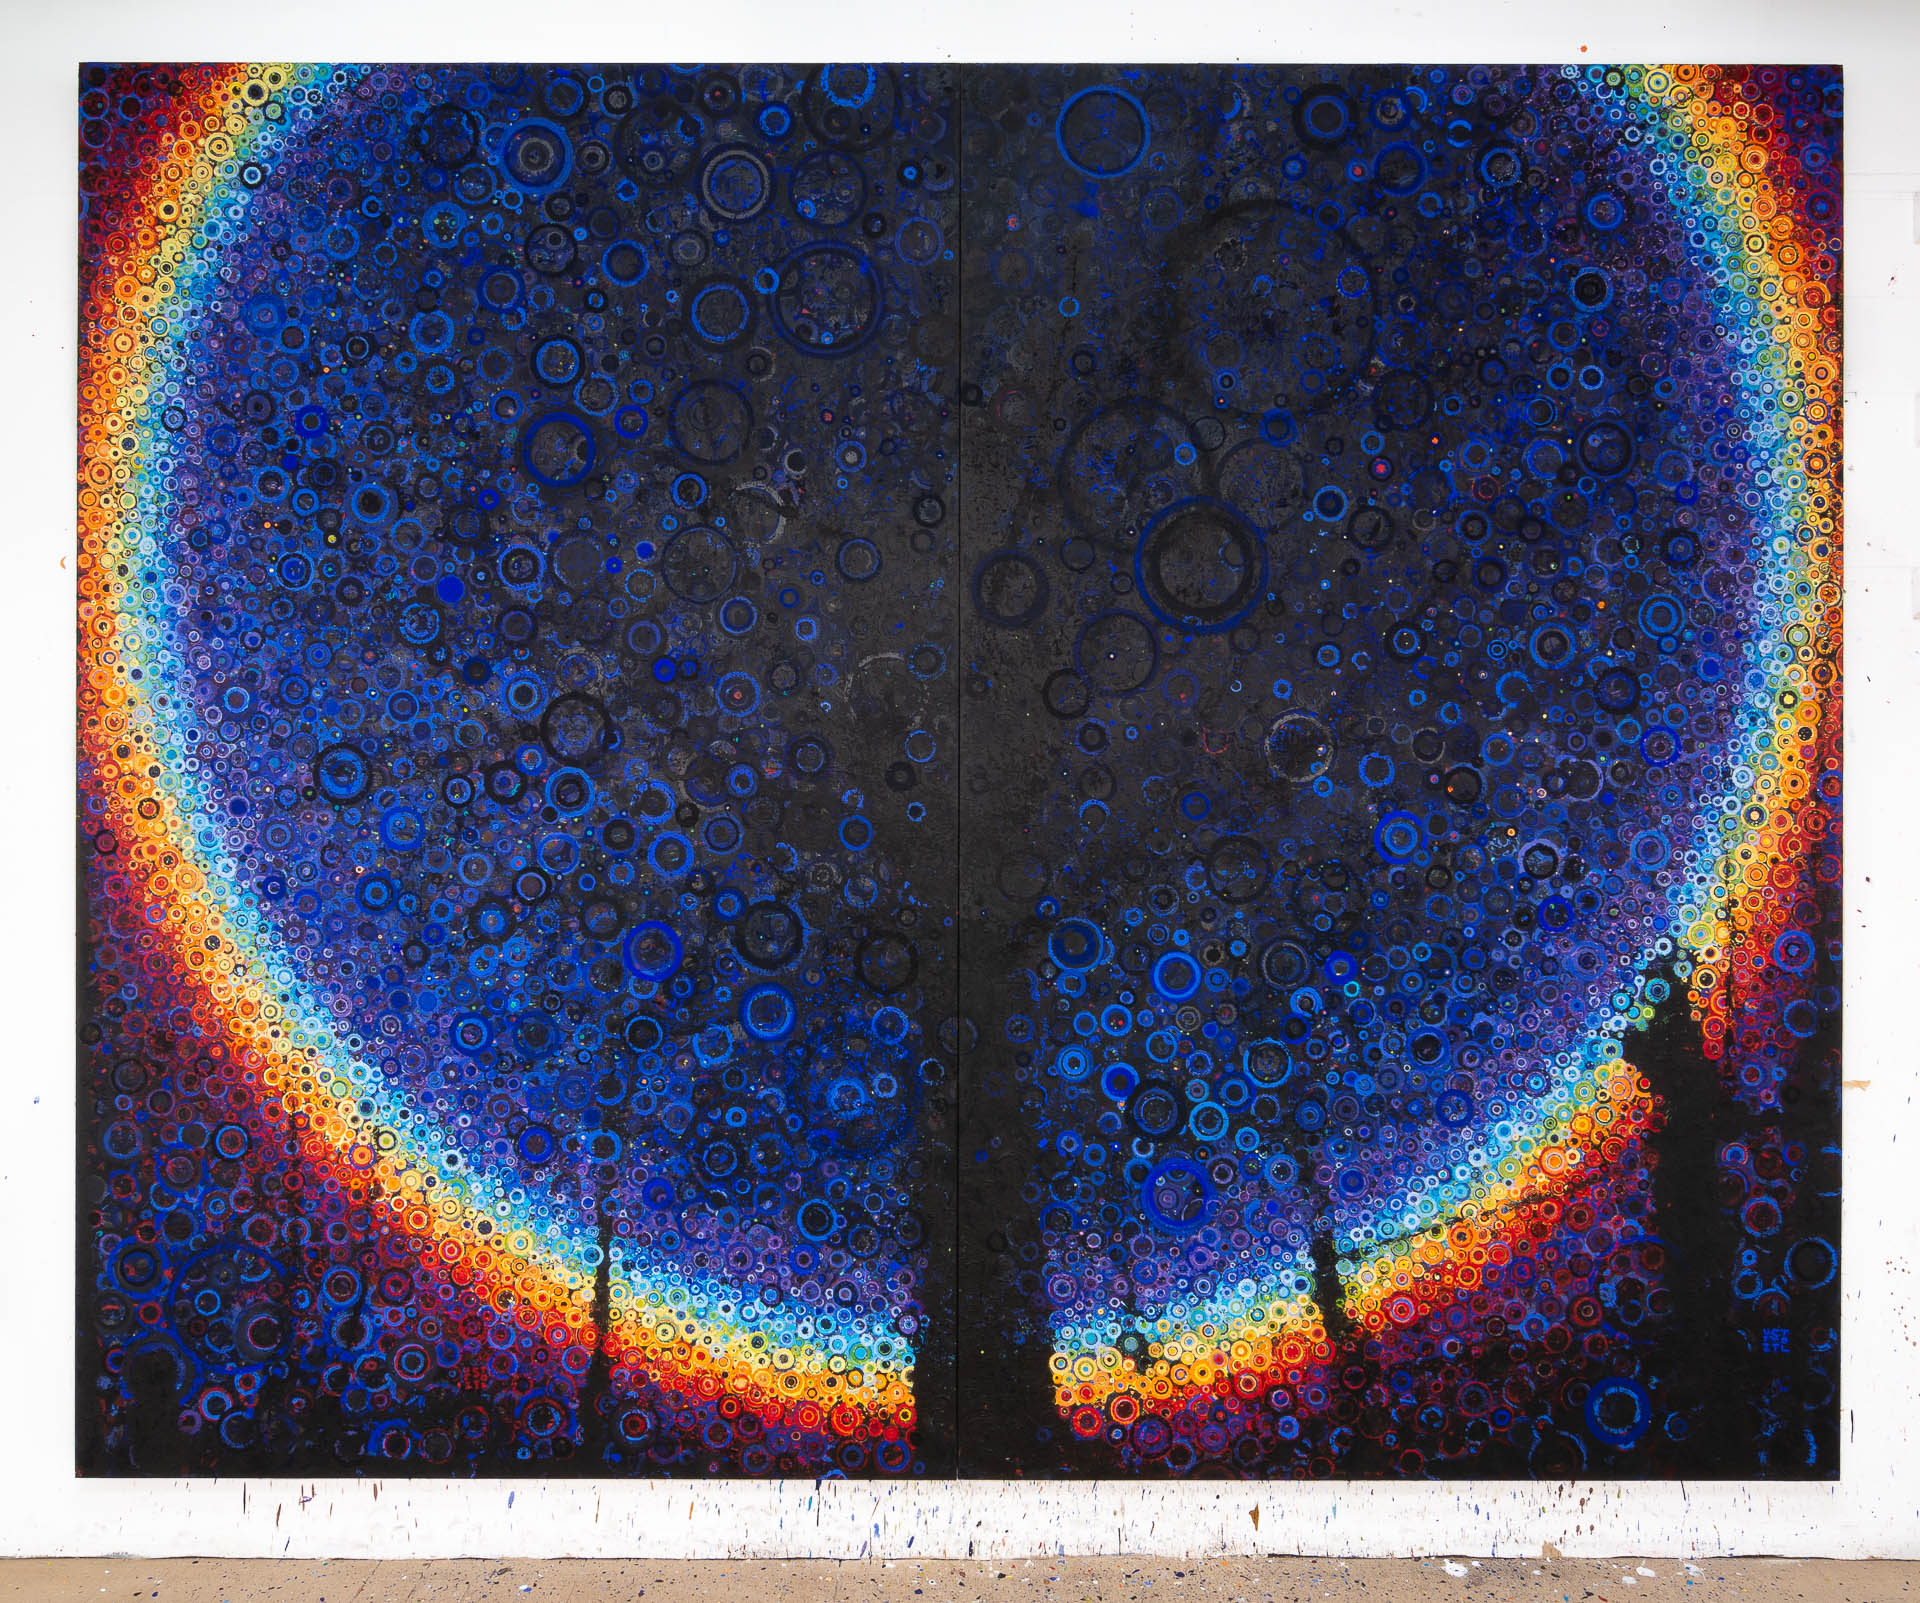 An 8 by 10 foot painting of a dark tree silhouetted against a dark blue background and a large circular rainbow. The image is created across a field of many hand-painted circles